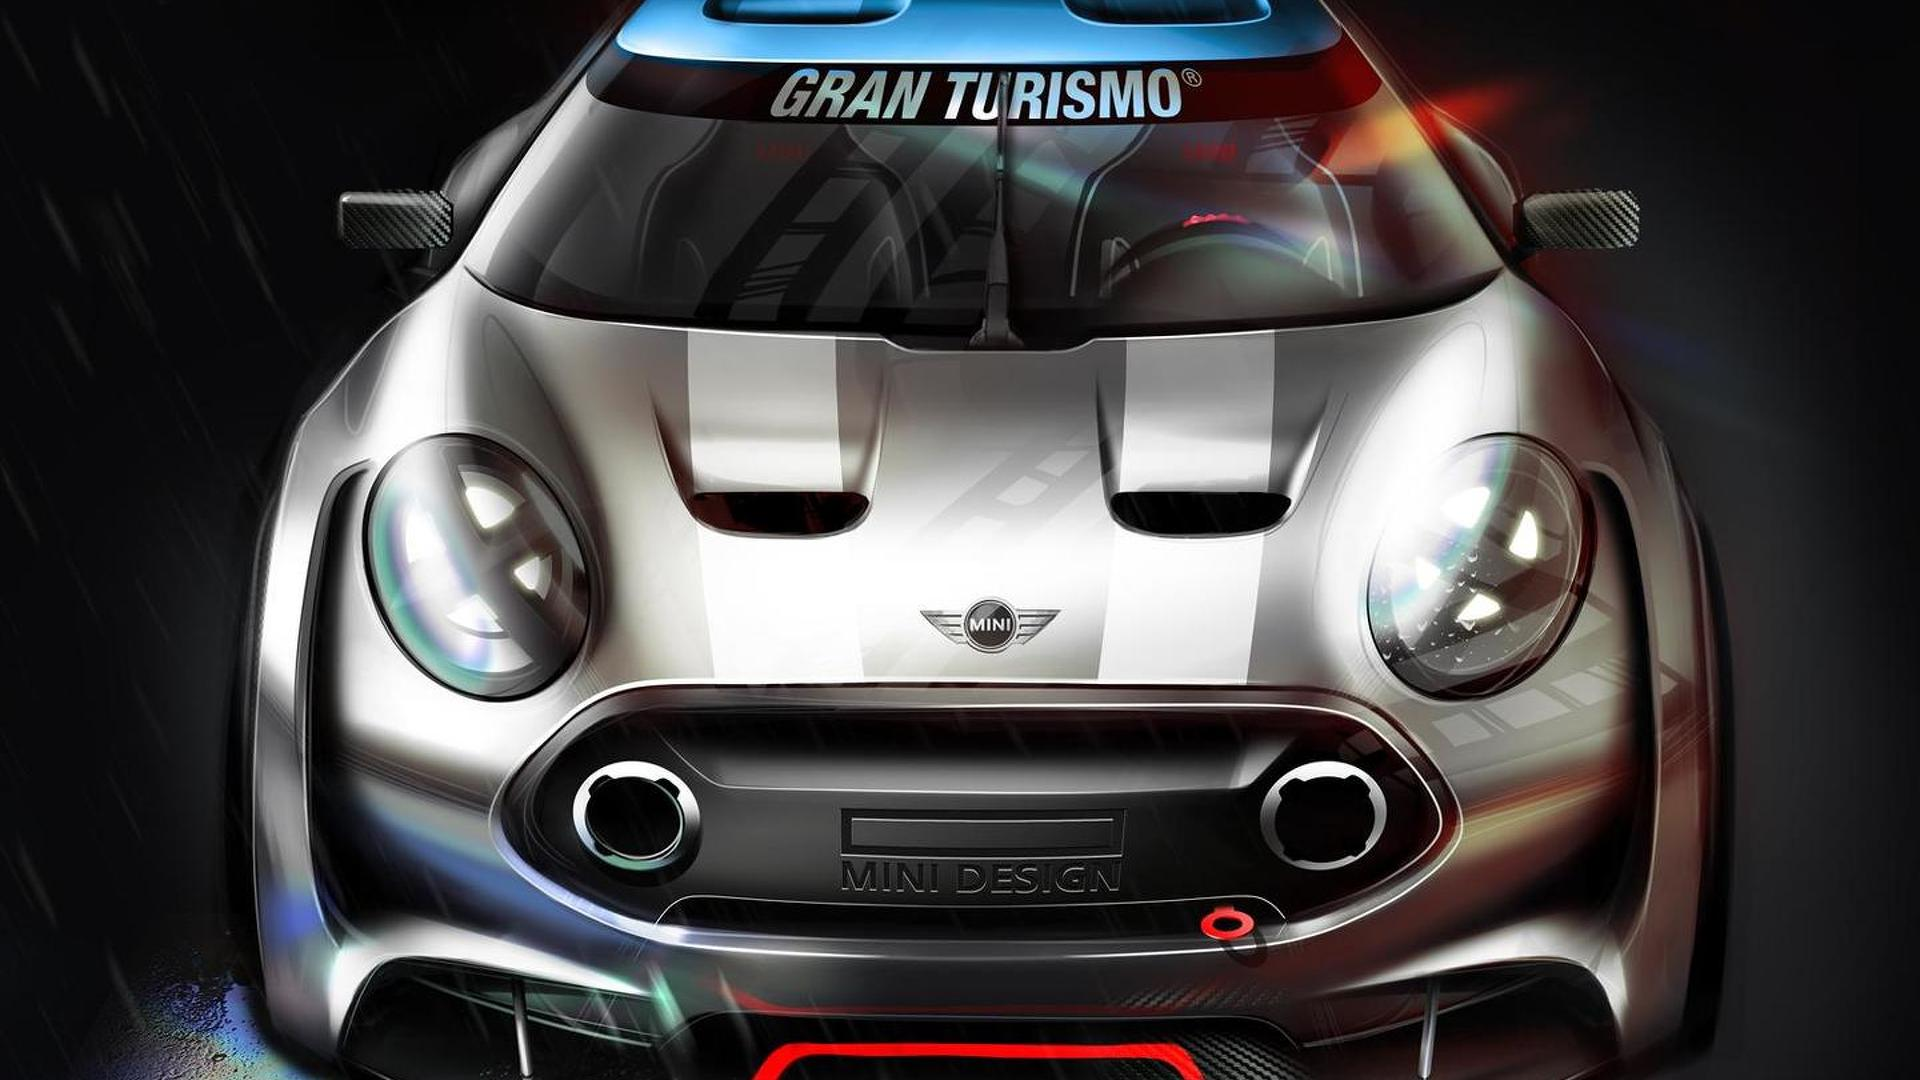 MINI Clubman Vision Gran Turismo officially unveiled